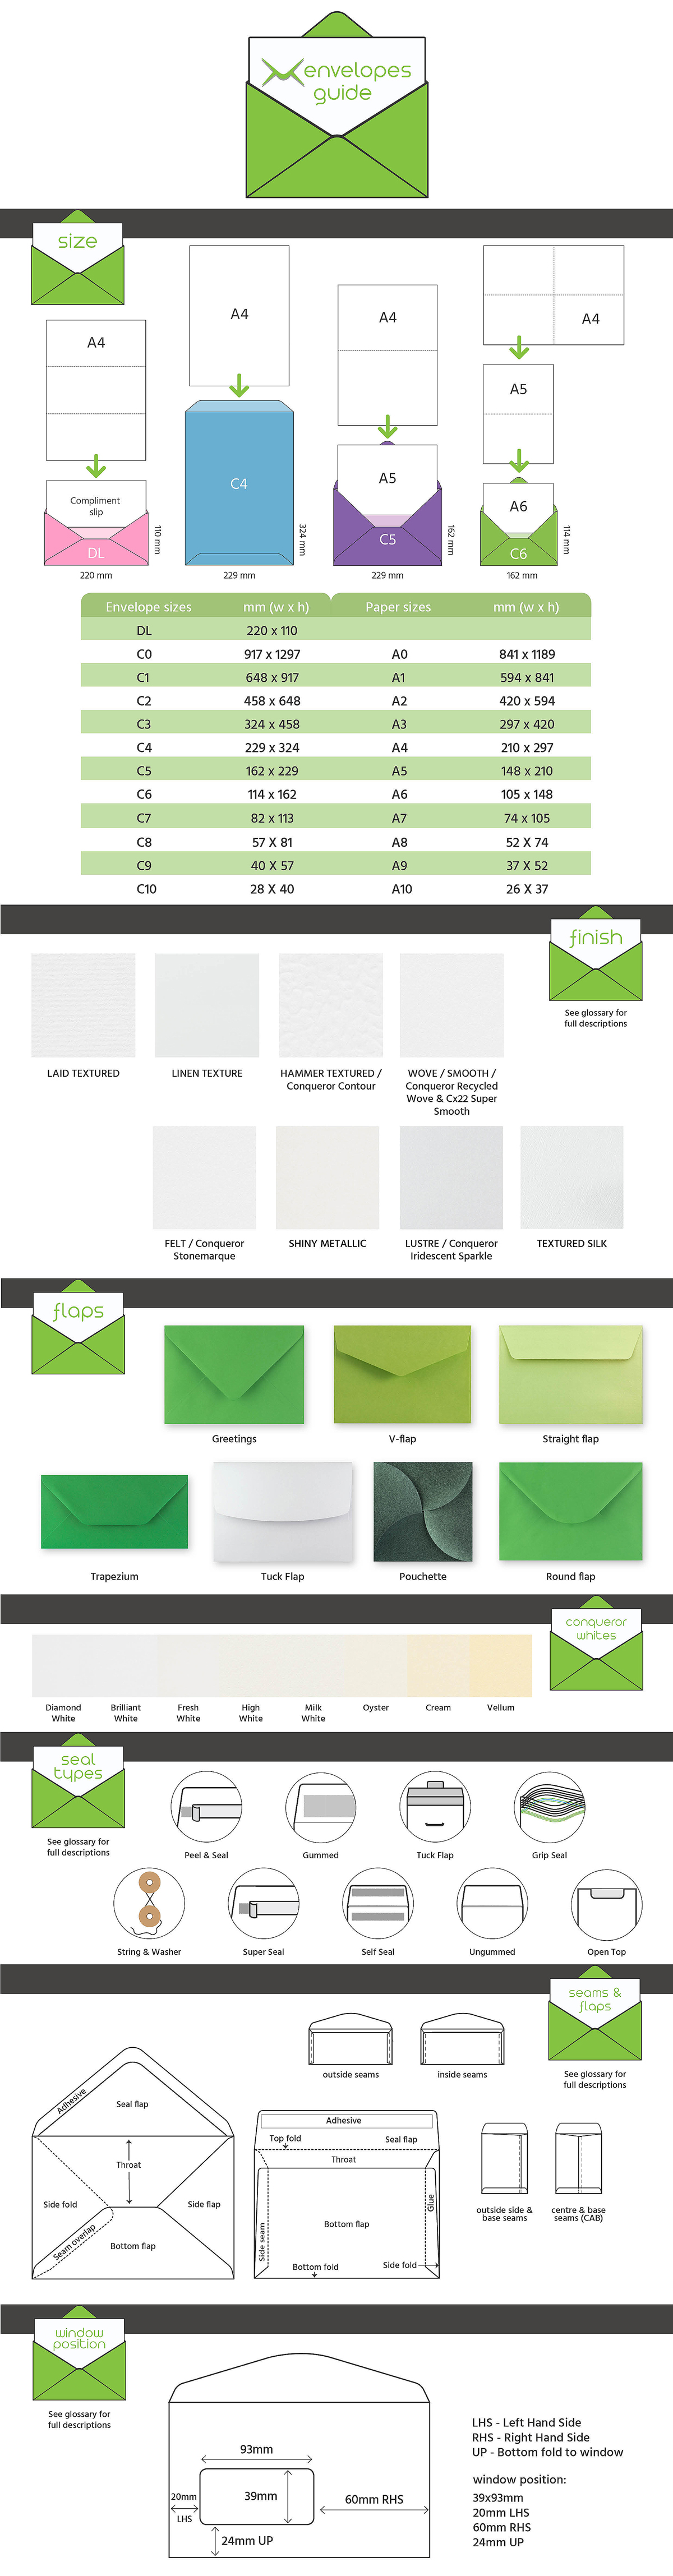 Envelopes Guide Infographic